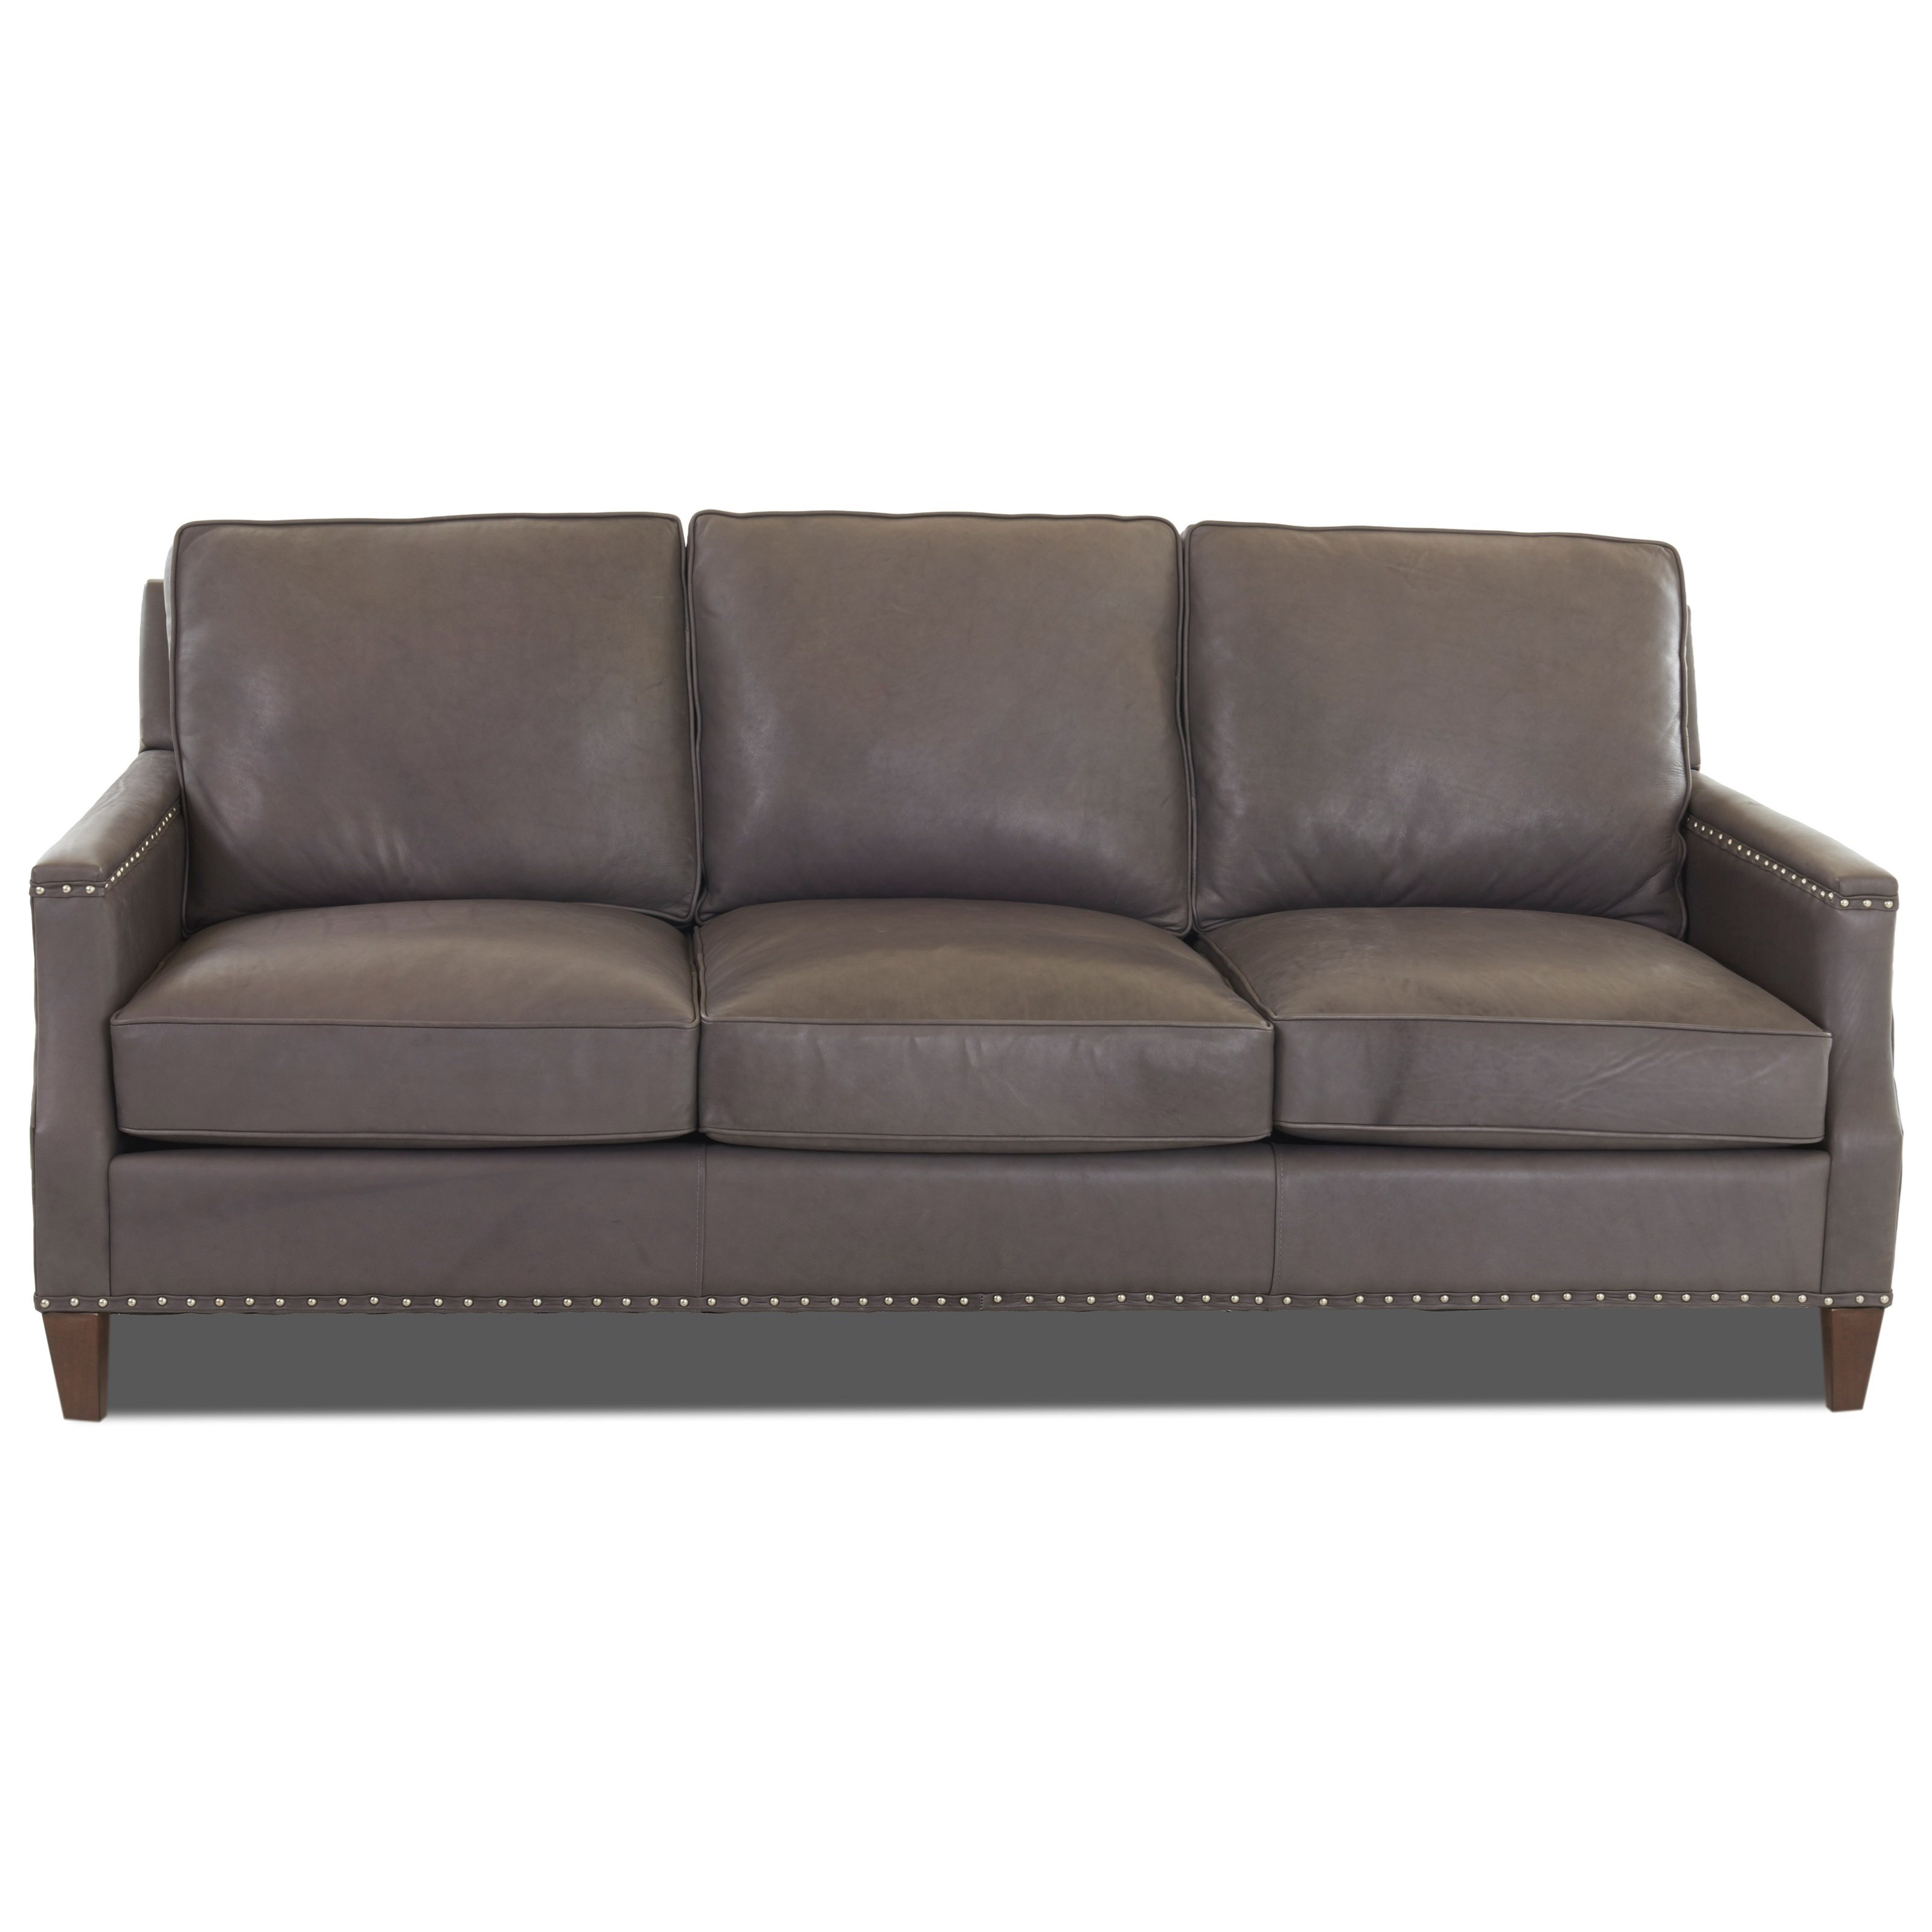 Transitional Sofa with Nailhead Studs (No Trim)